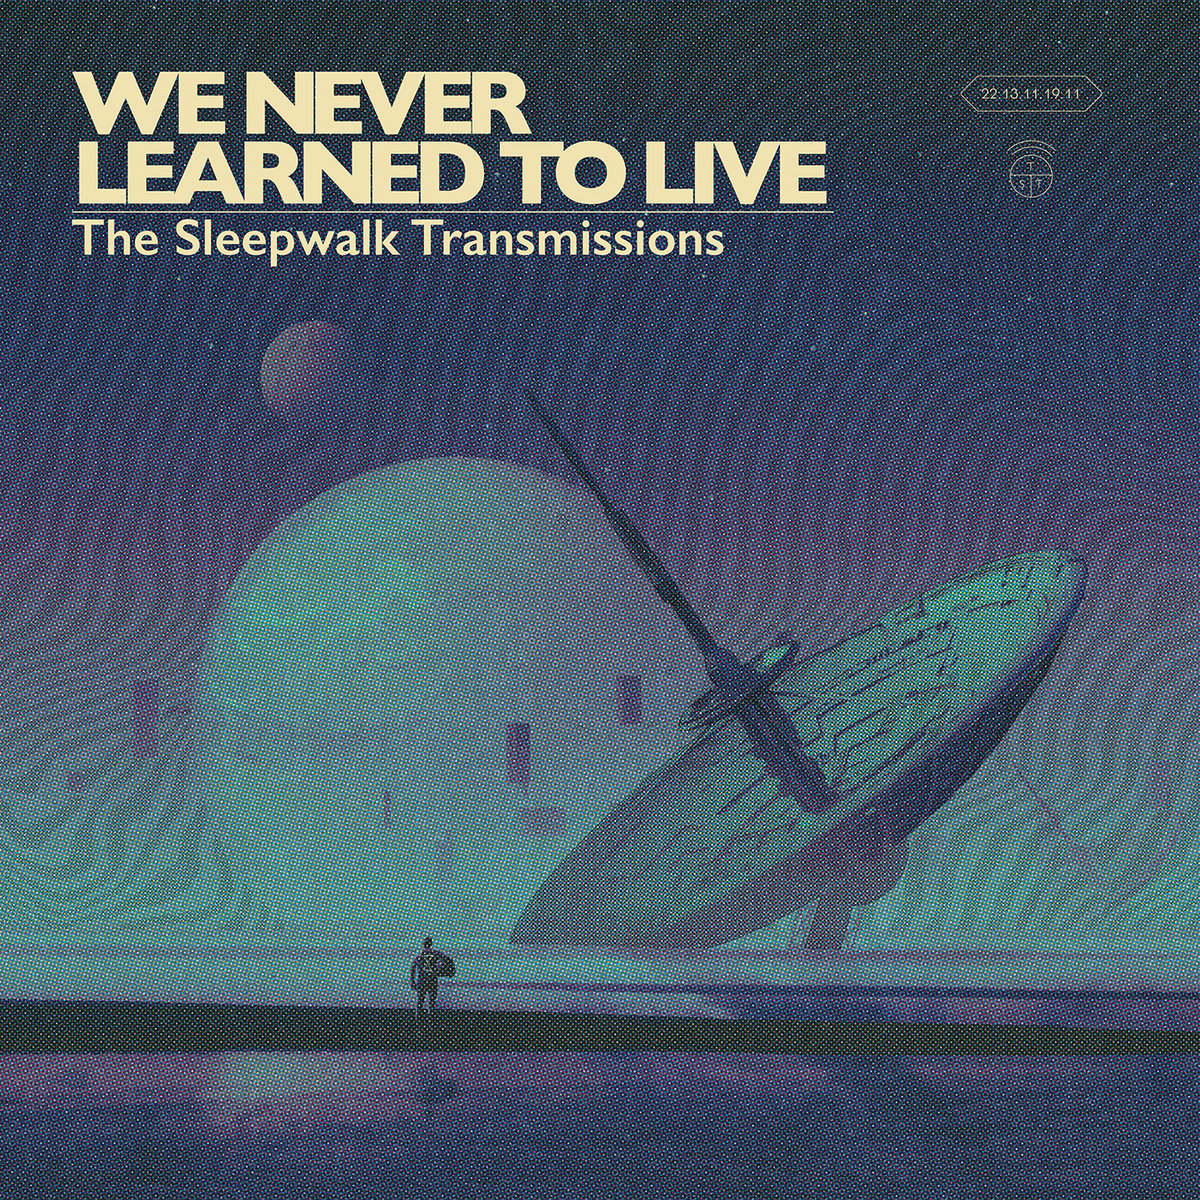 We Never Learned To Live - The Sleepwalk Transmissions LP